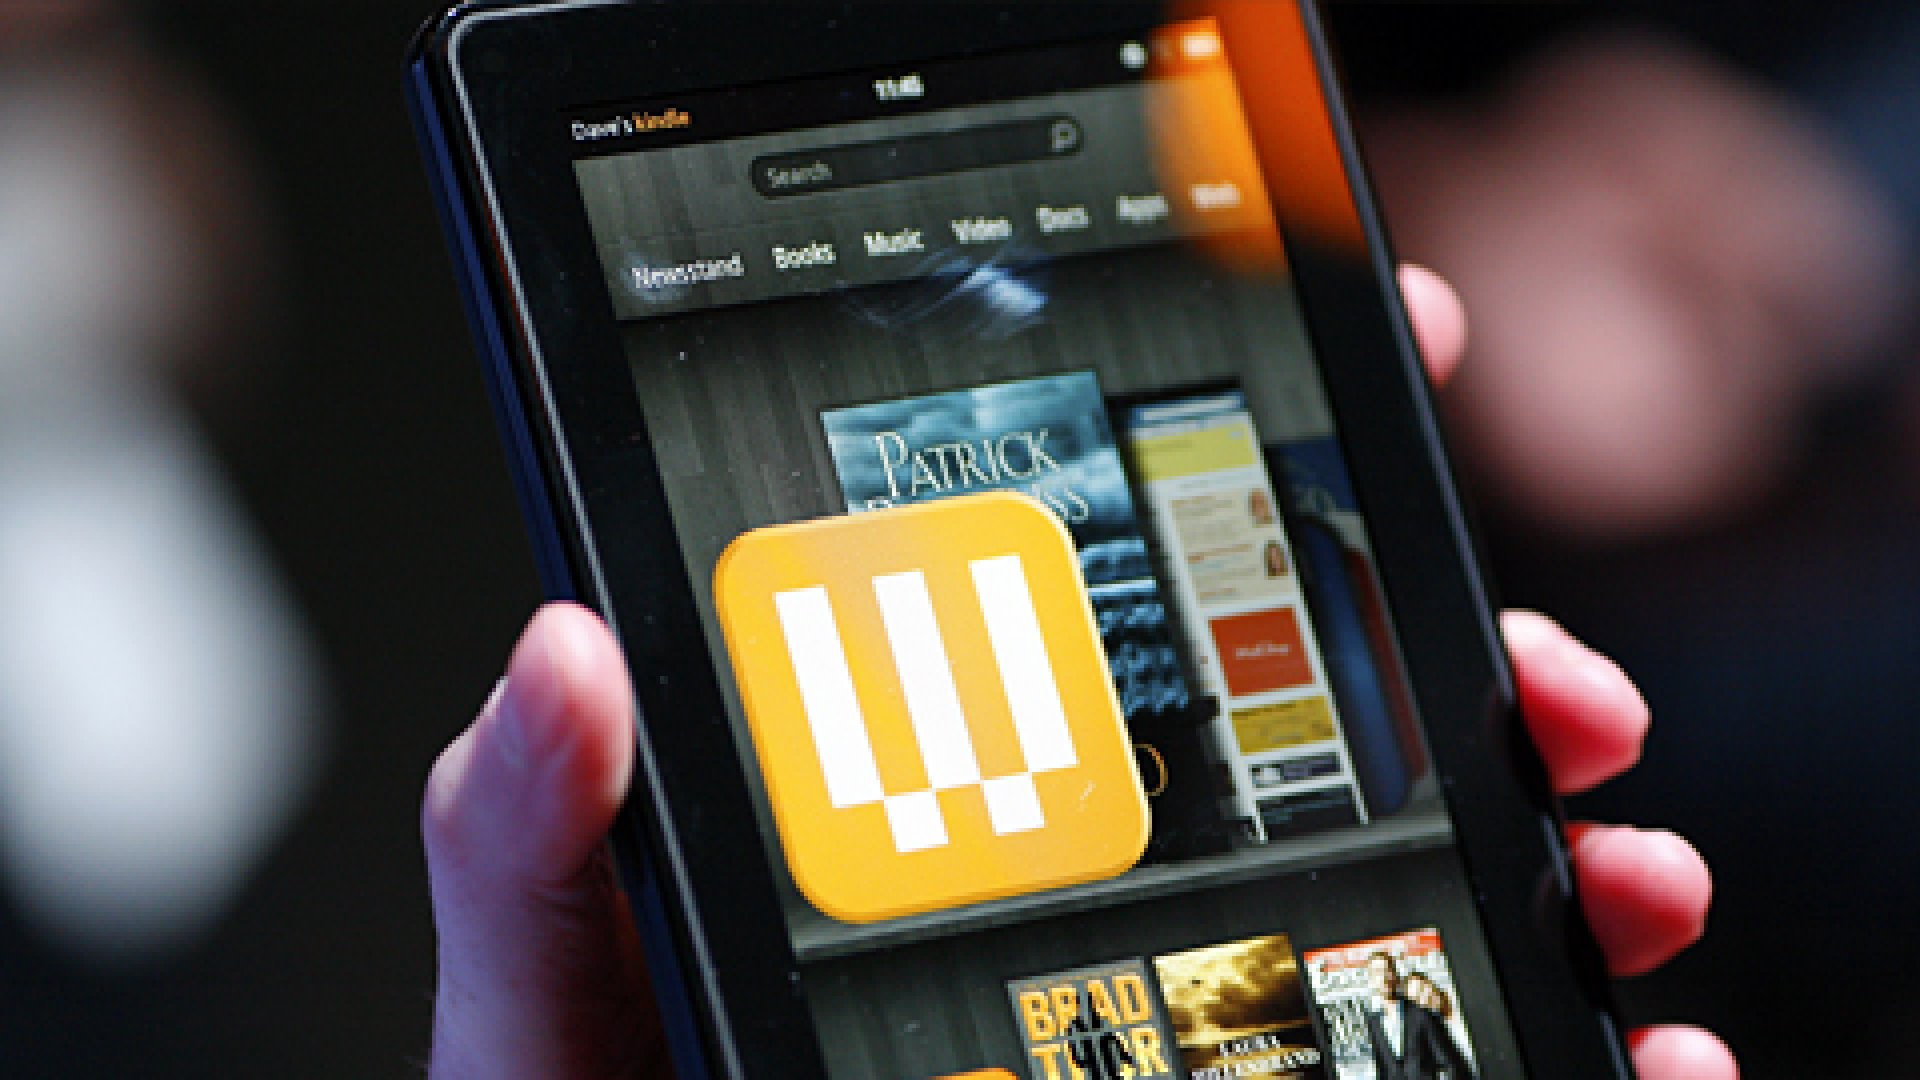 Amazon loses money on each Kindle Fire it makes. The real moneymaker is the content business behind the device.